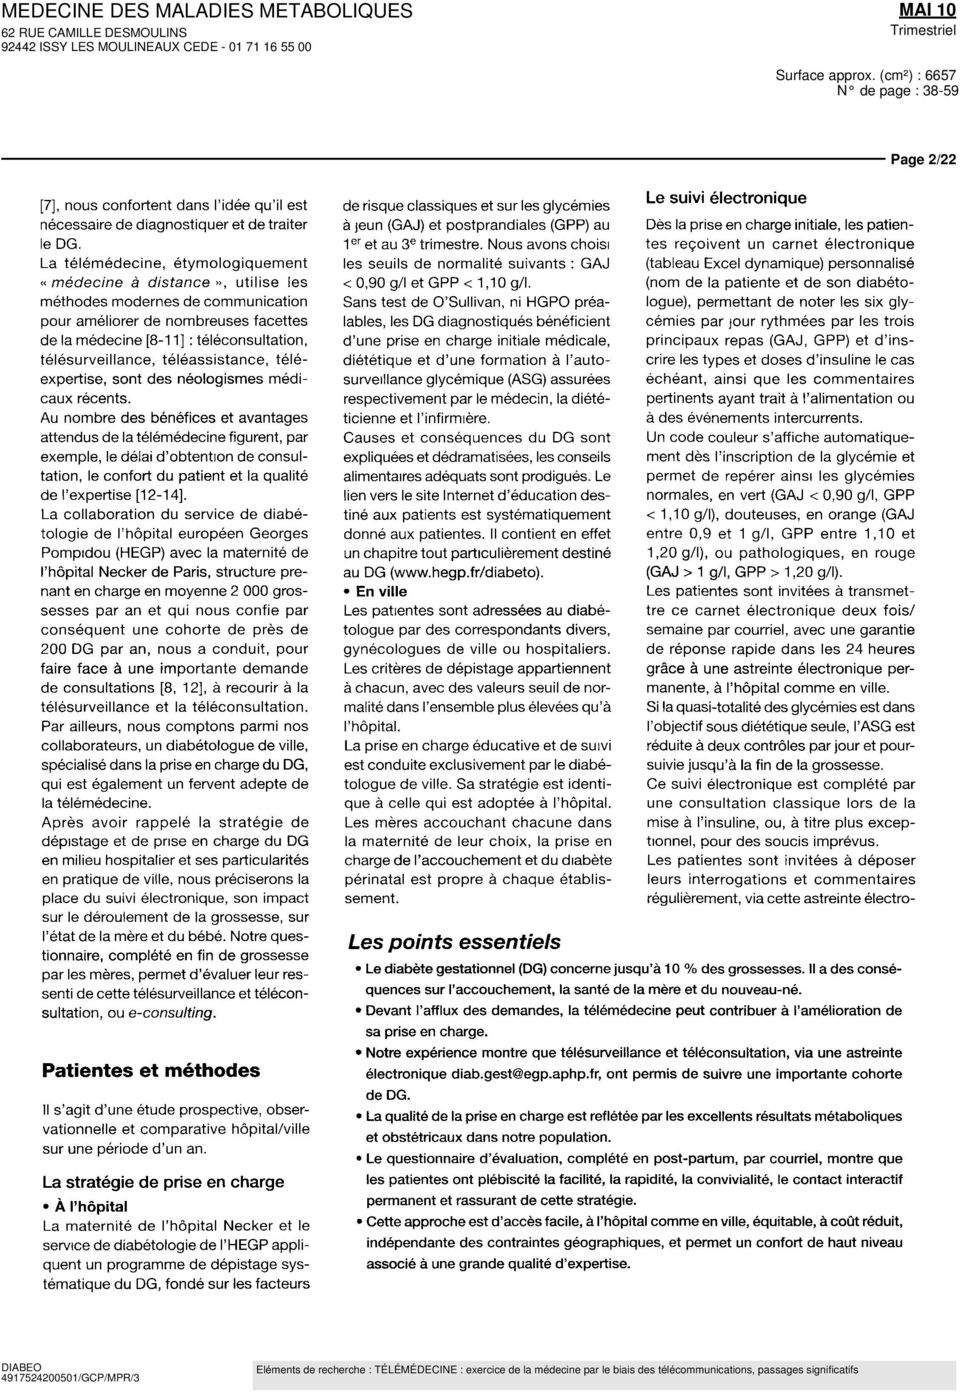 benefices et avantages attendus de la telemedecine figurent, par exemple, le délai d'obtention de consultation, le confort du patient et la qualite de l'expertise [12-14] La collaboration du service